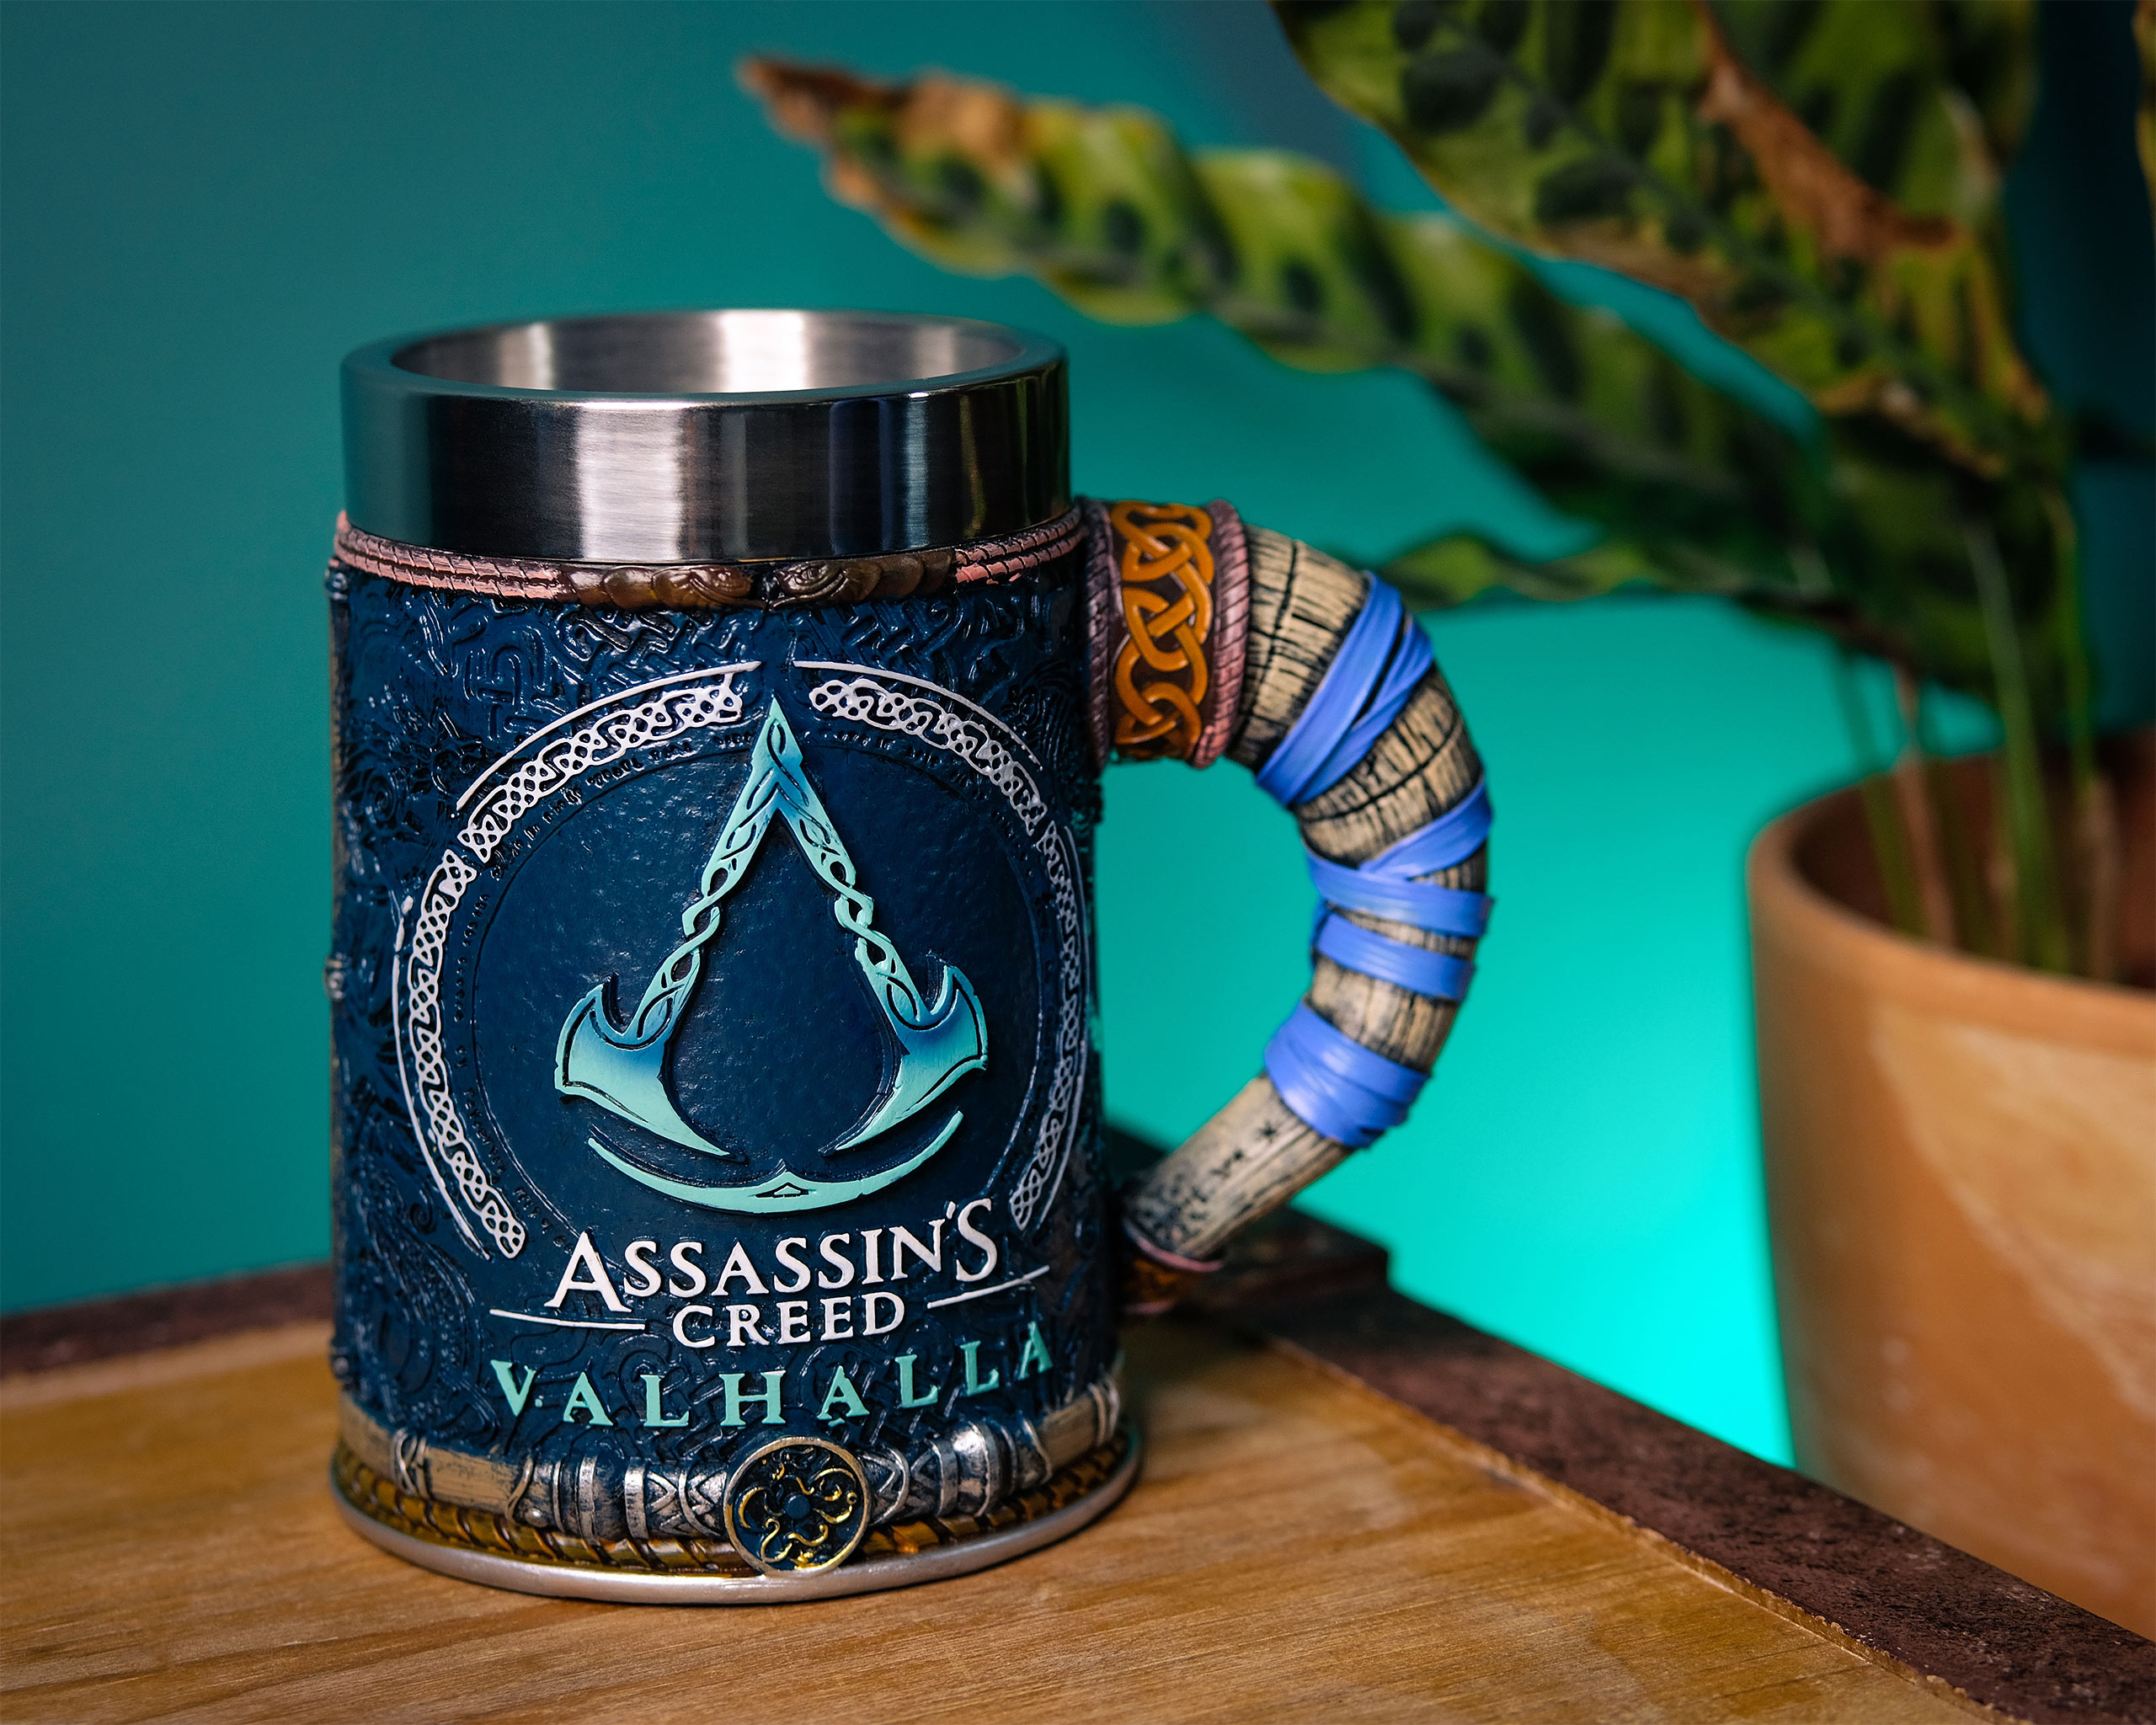 Assassin's Creed - Valhalla Logo Krug deluxe